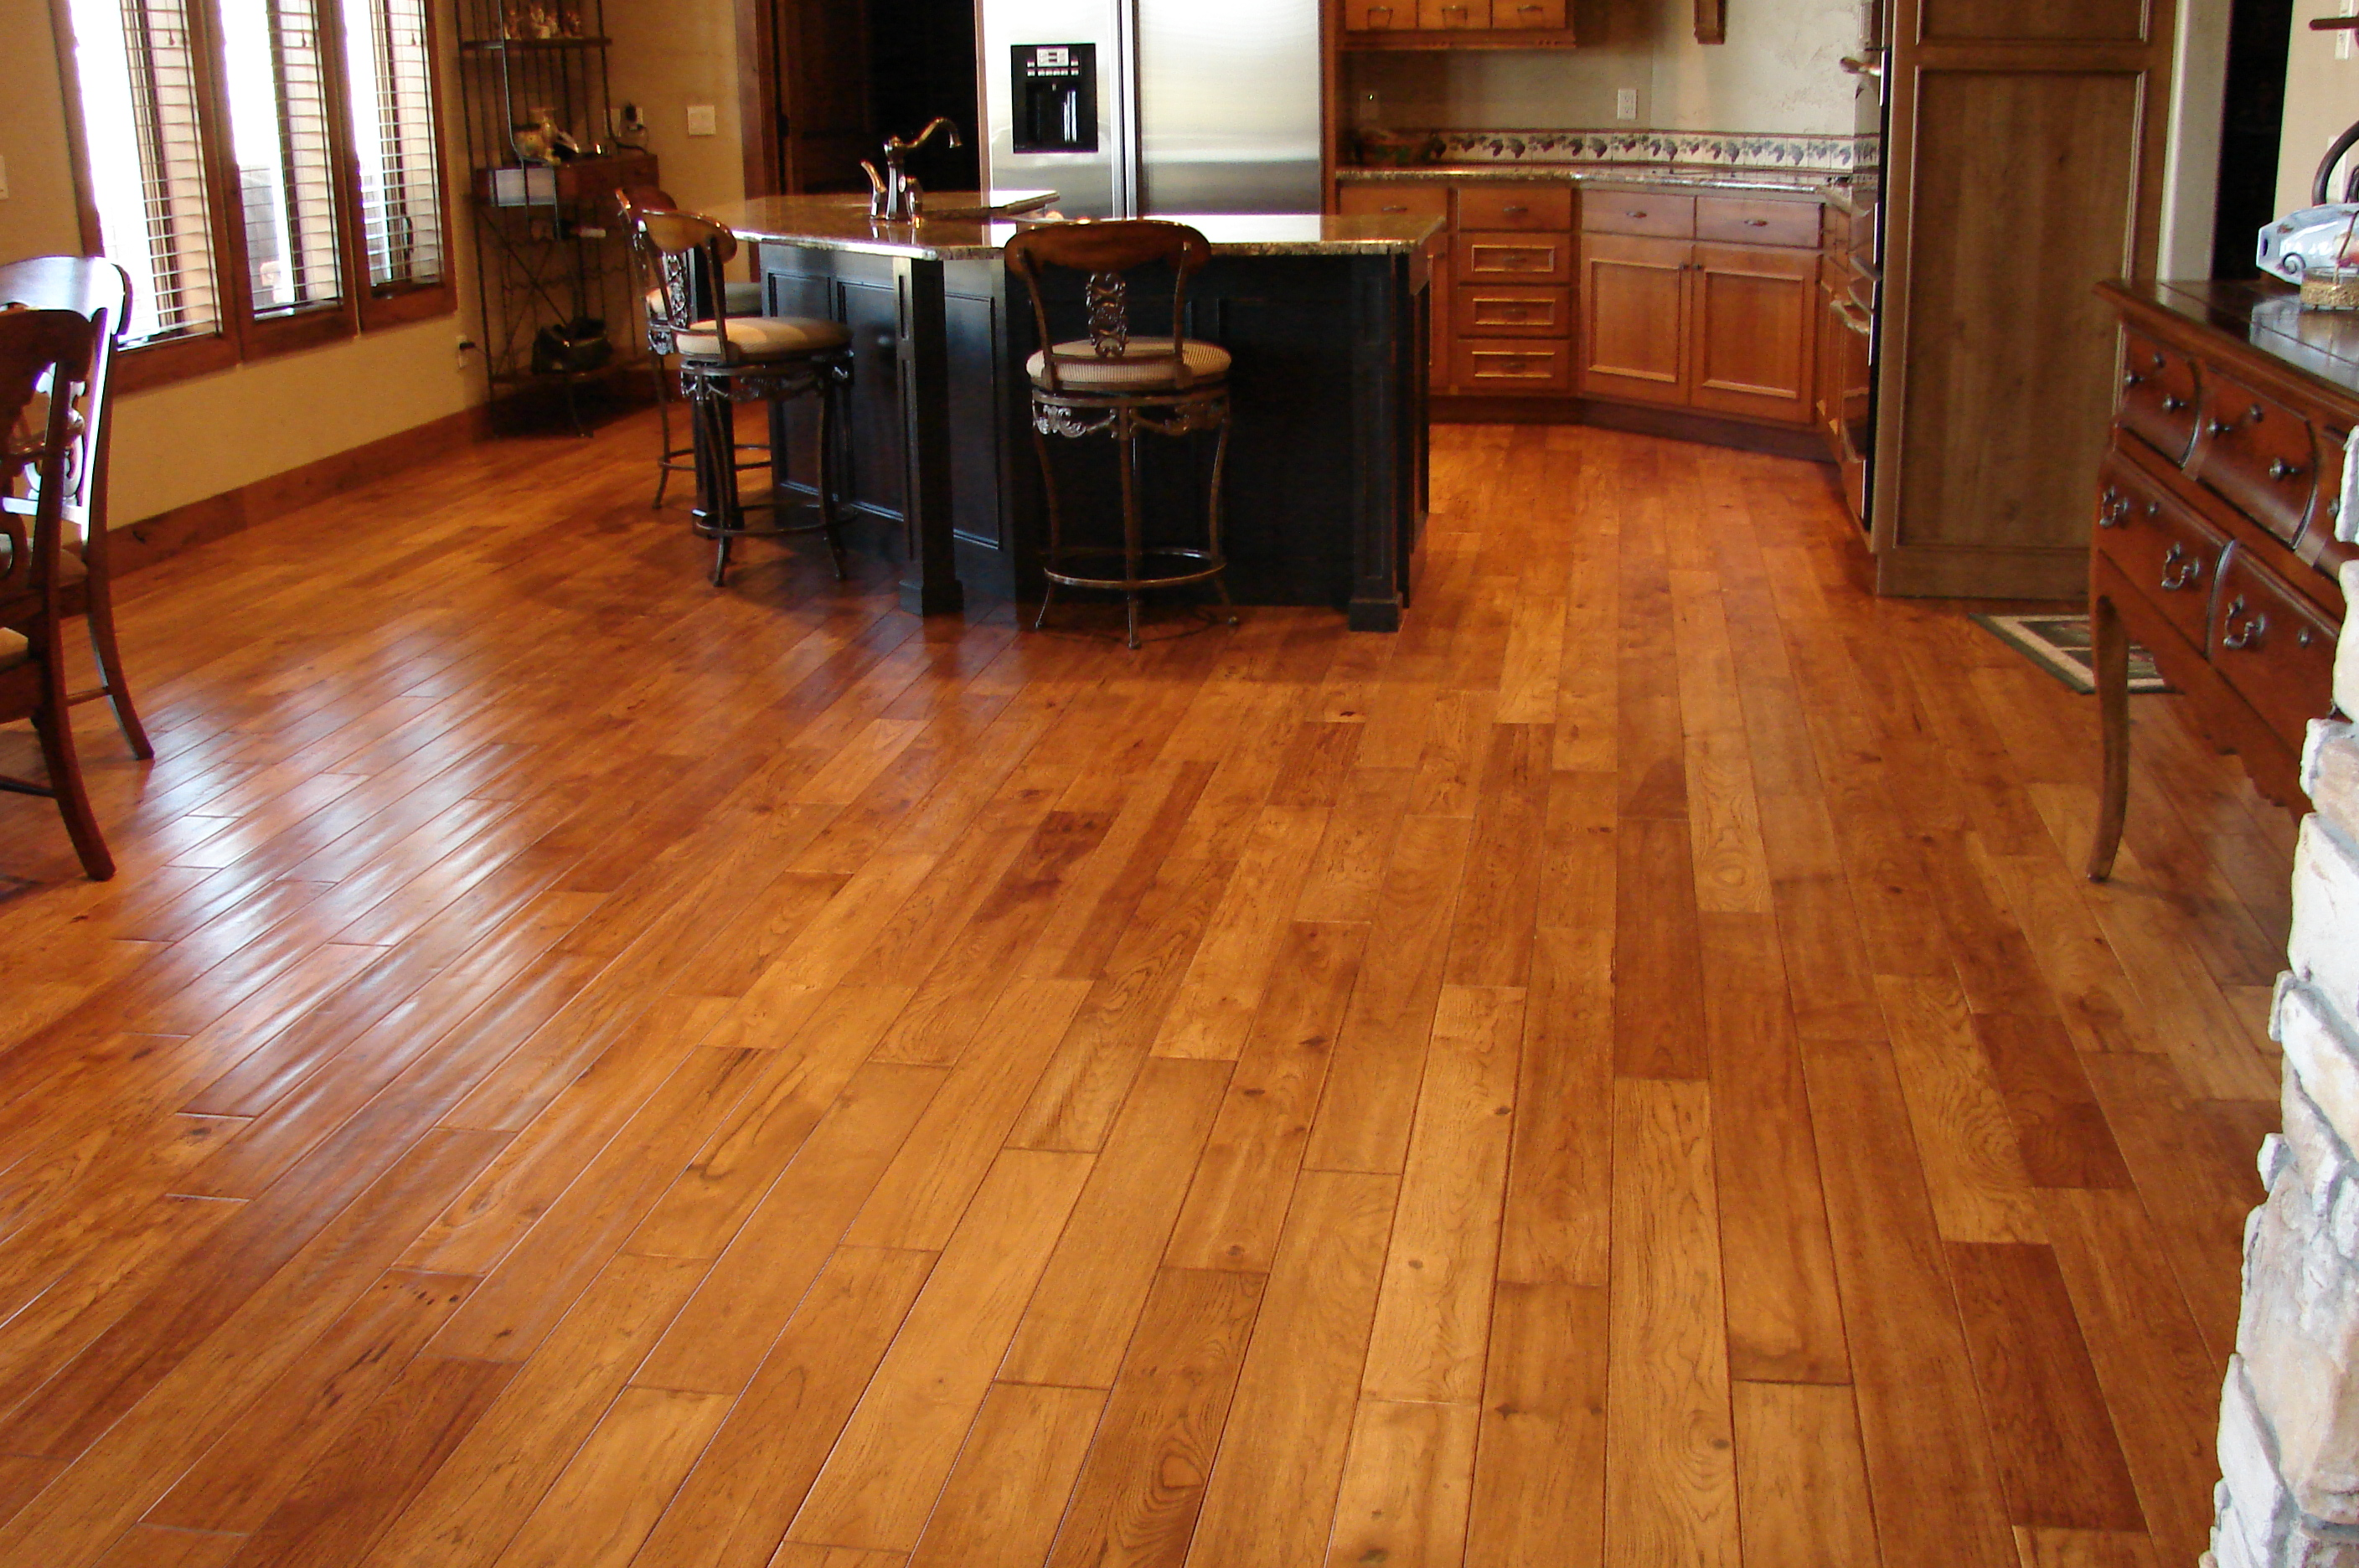 Laminate Floors For Kitchens Kitchen Floor Ideas Tile Floor Designs For Flooring Vinyl Tile